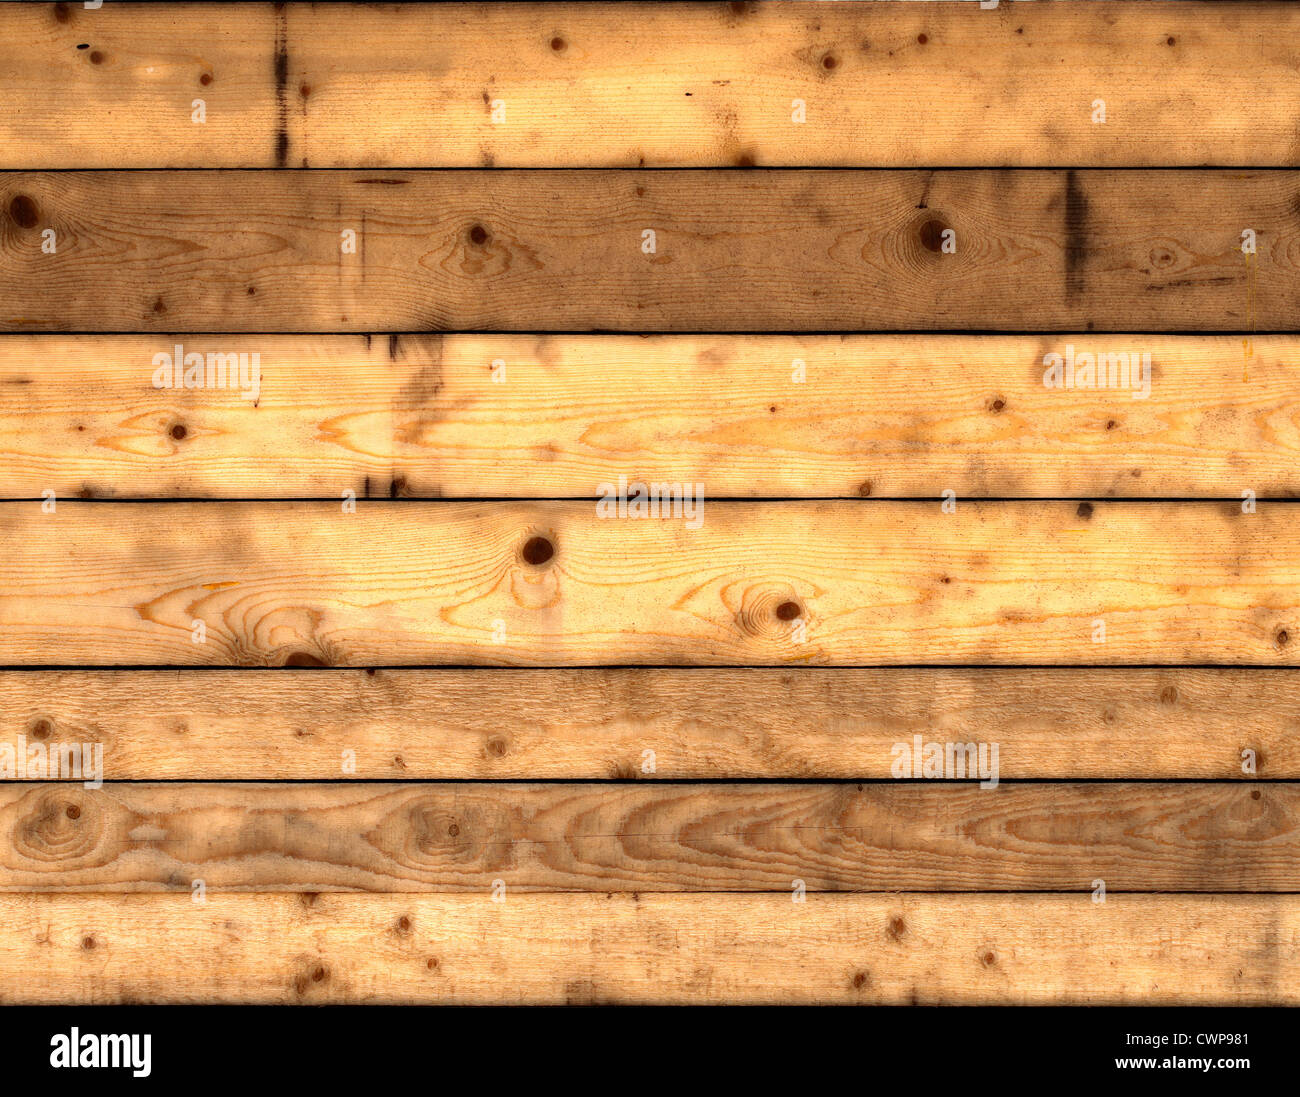 texture of wooden planks - Stock Image